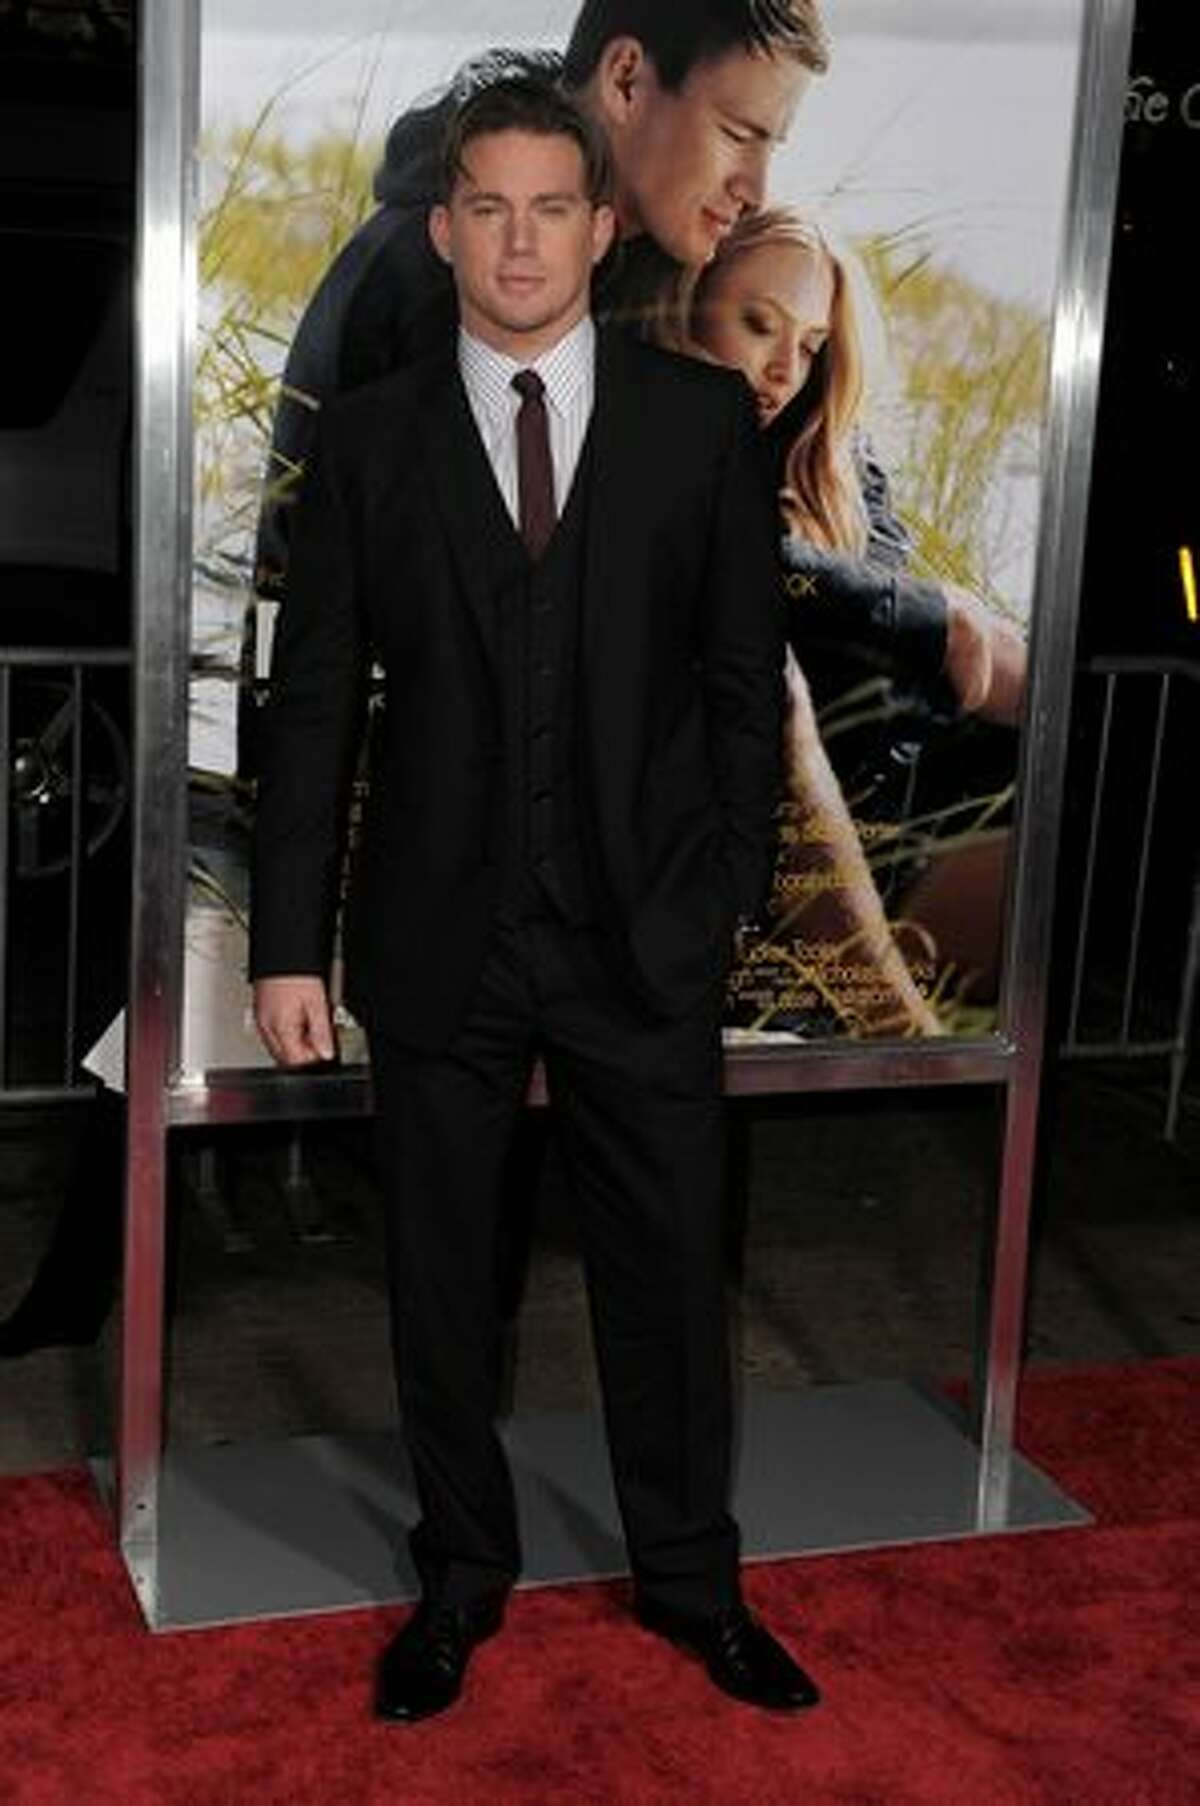 HOLLYWOOD - FEBRUARY 01: Actor Channing Tatum arrives at the premiere of Screen Gems'